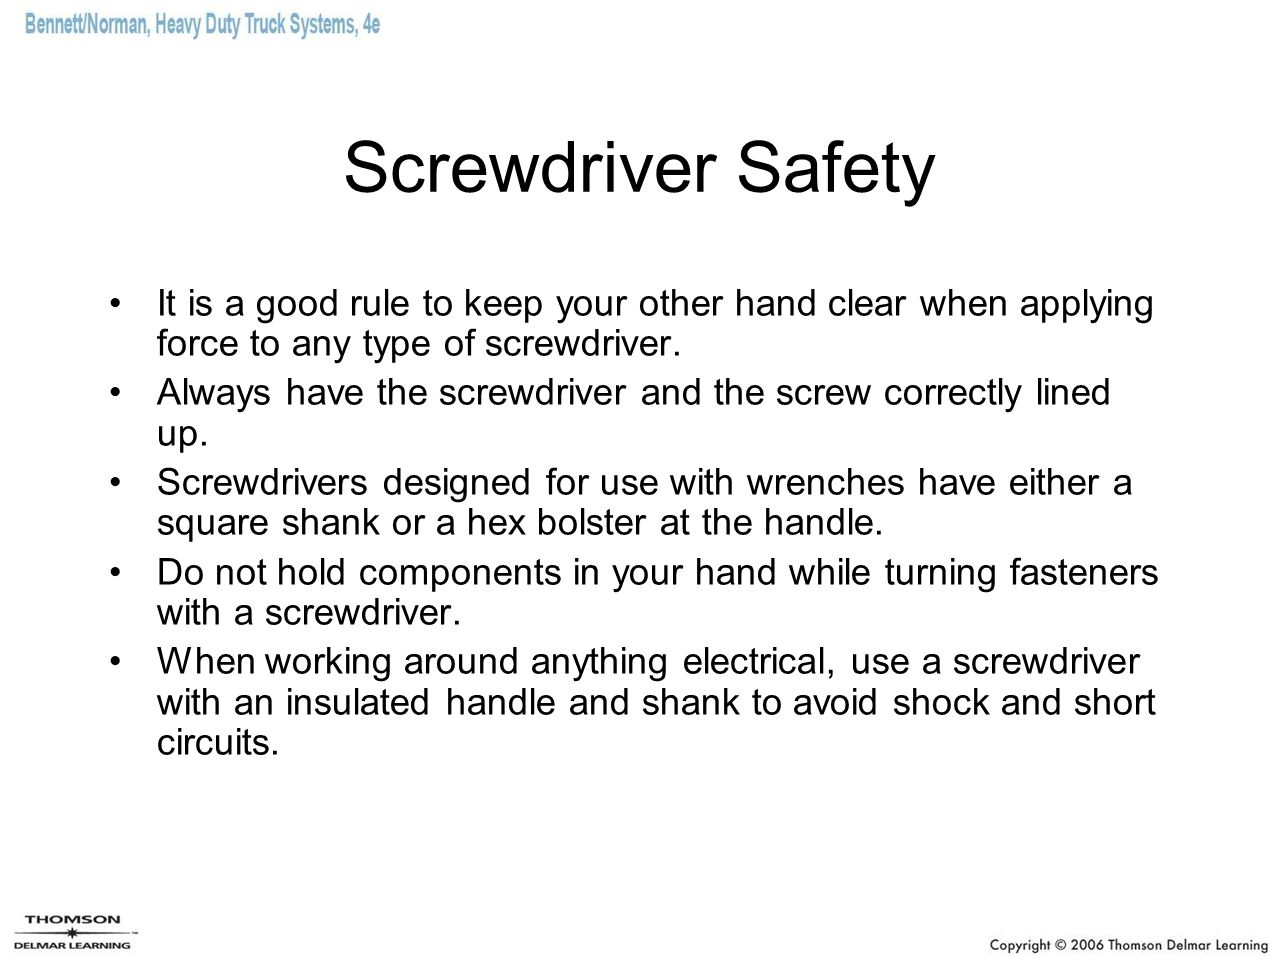 Screwdriver Safety It is a good rule to keep your other hand clear when applying force to any type of screwdriver.